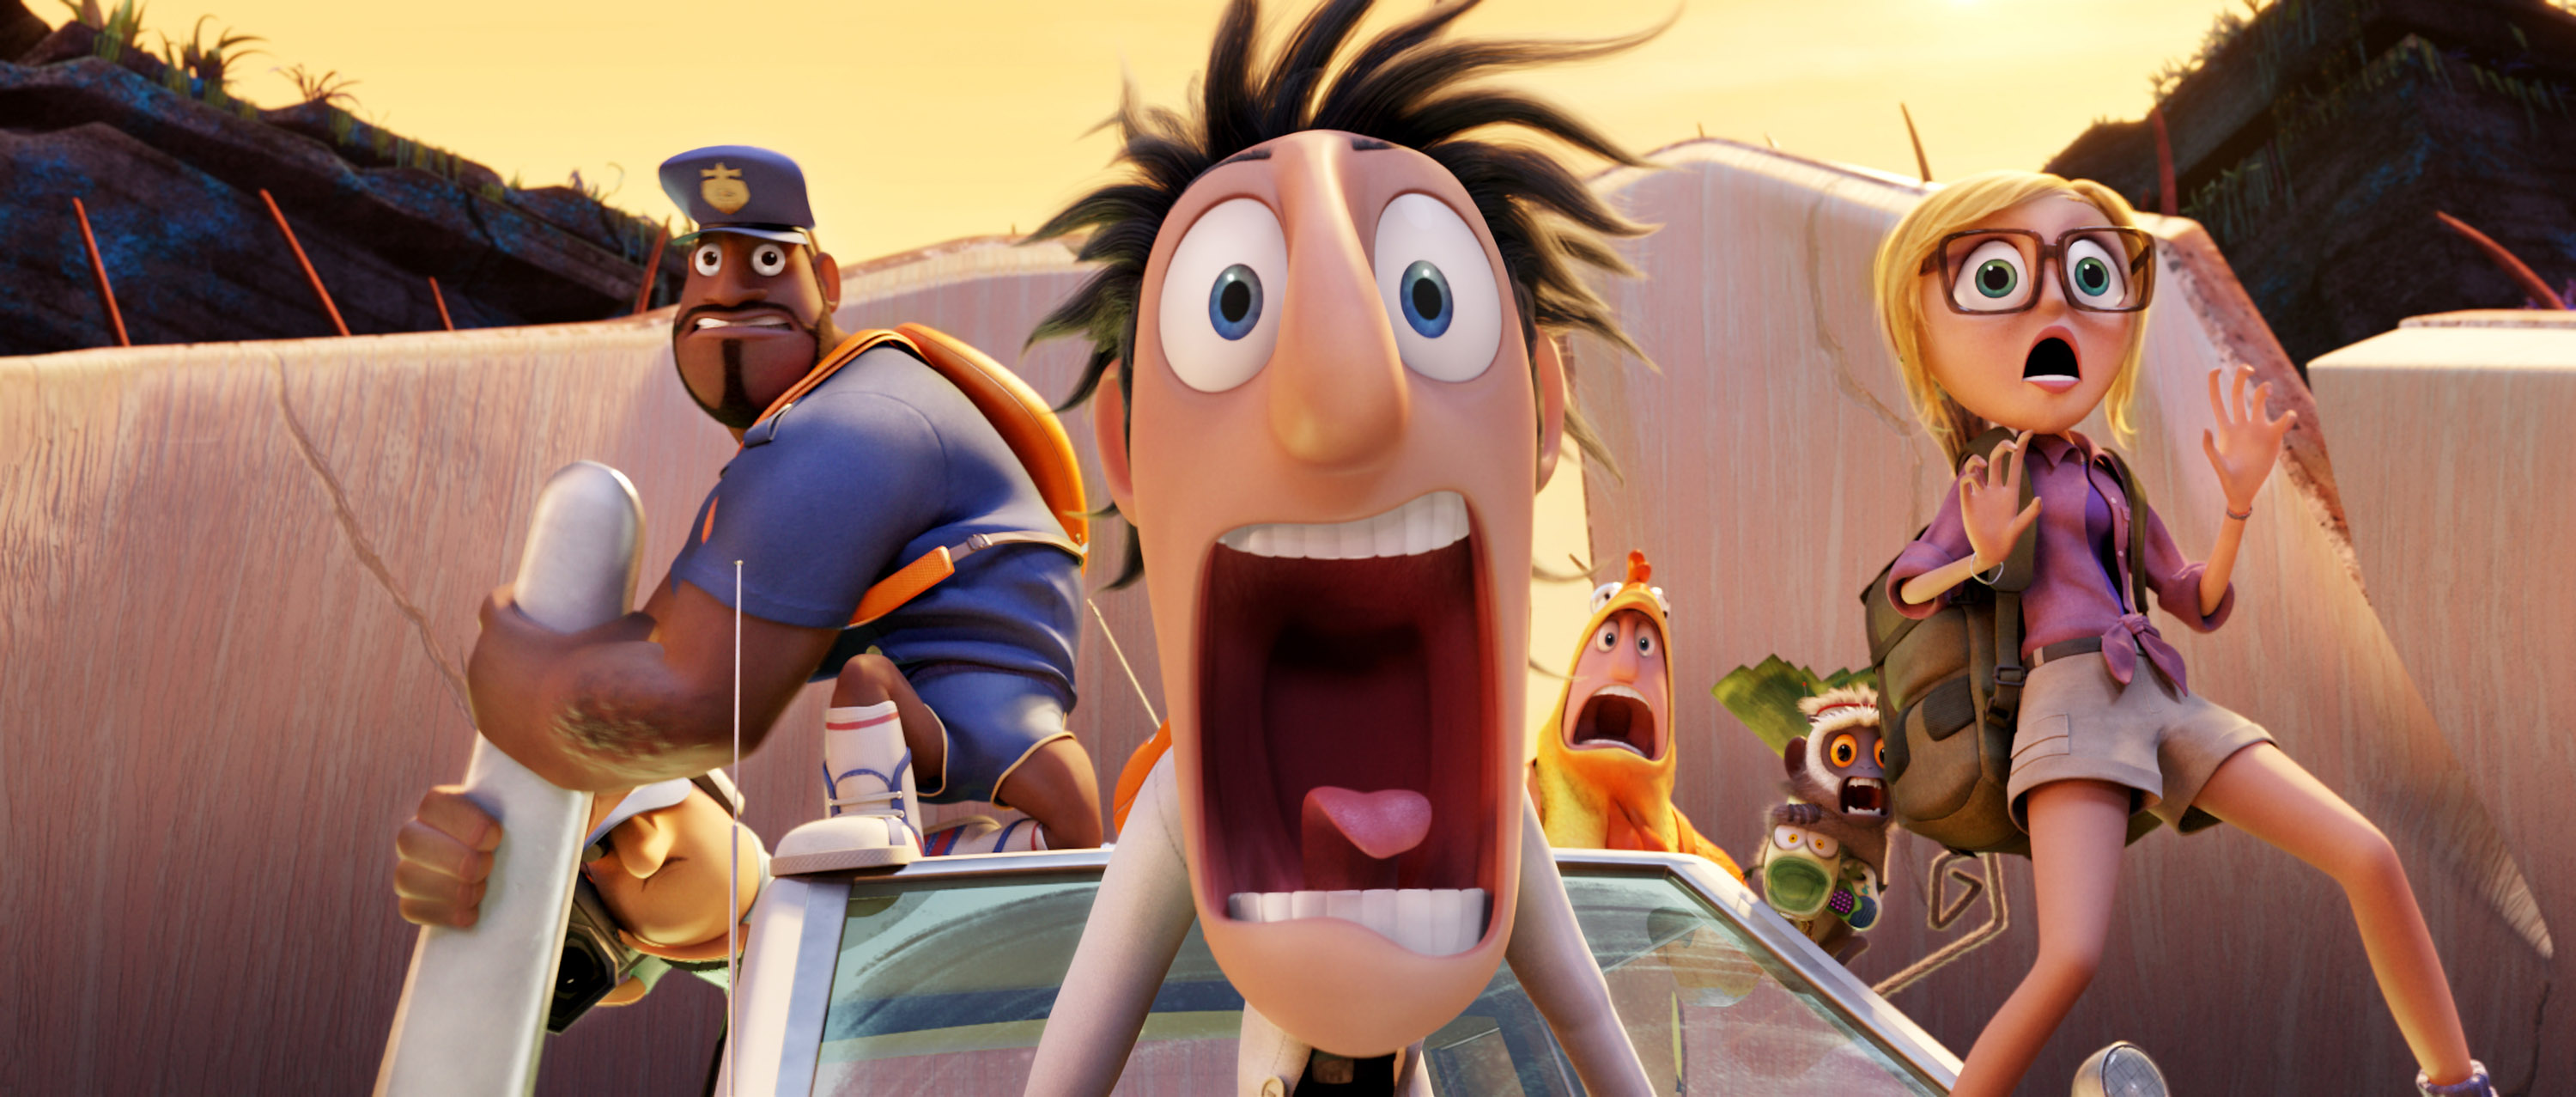 Earl, voiced by Terry Crews, Flint, voiced by Bill Hader, and Sam, voiced by Anna Faris in a scene from 'Cloudy with a Chance of Meatballs.'